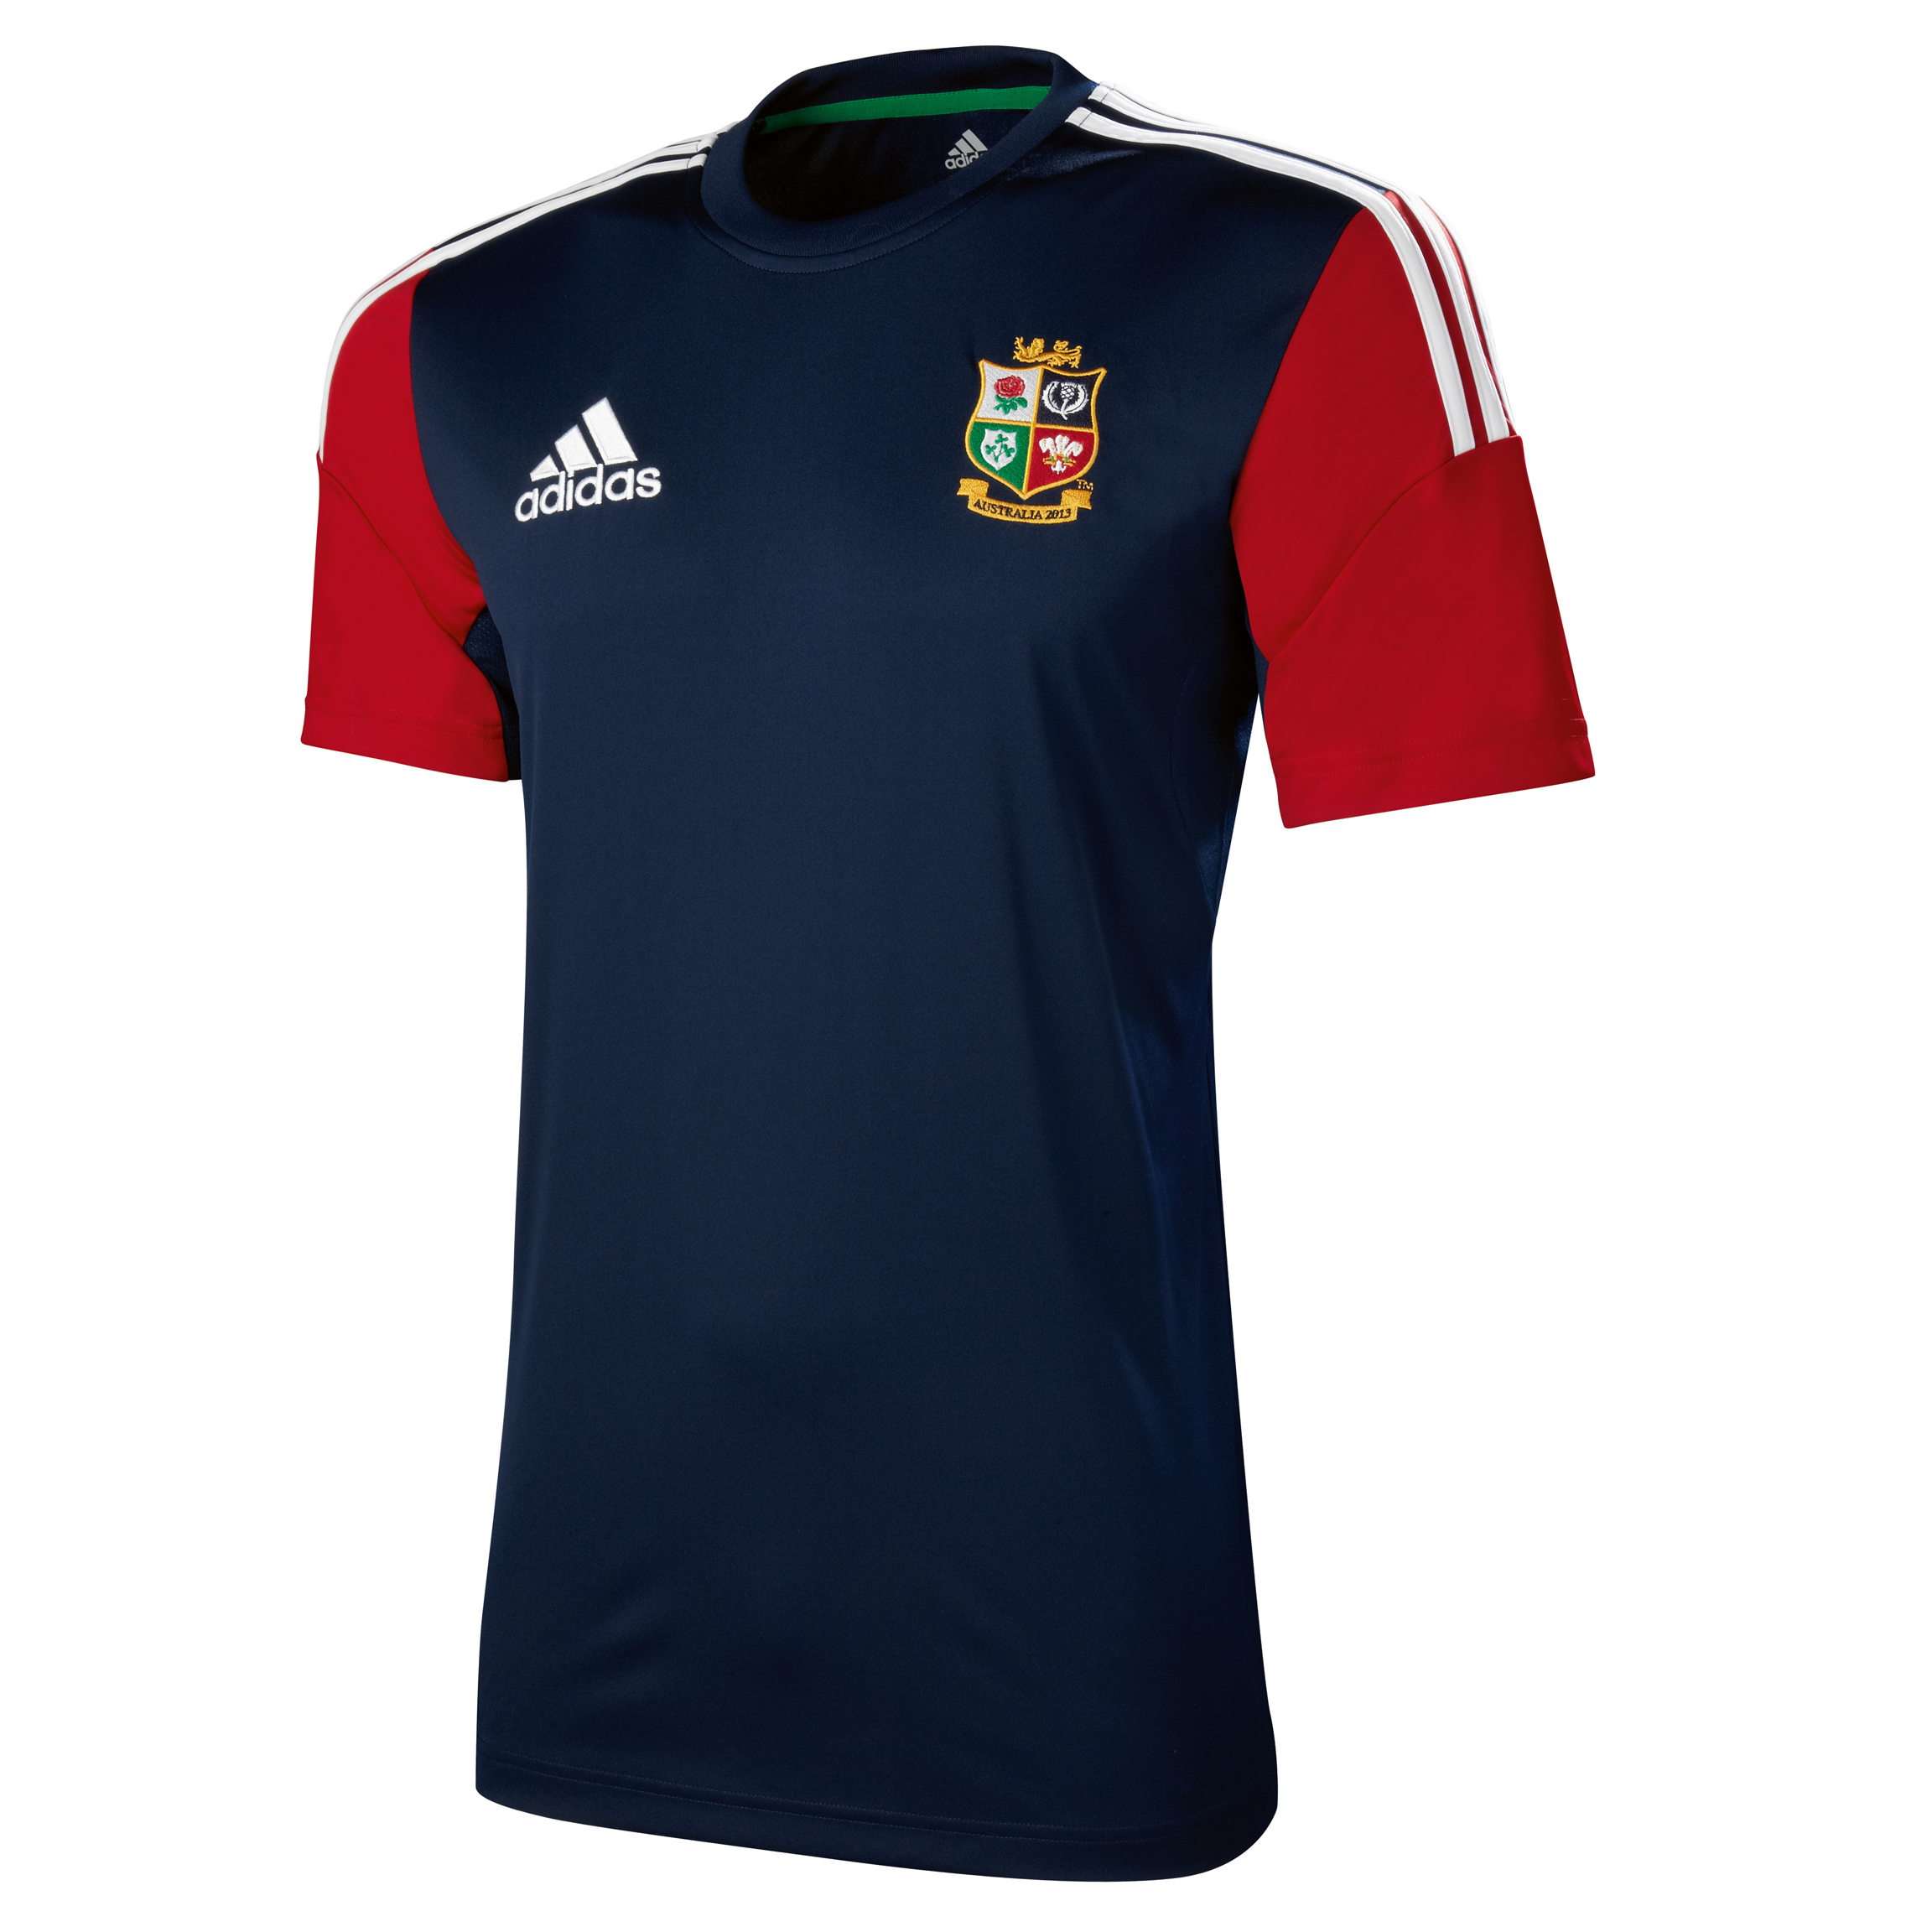 adidas British and Irish Lions Performance T-Shirt - Collegiate Navy/University Red/White